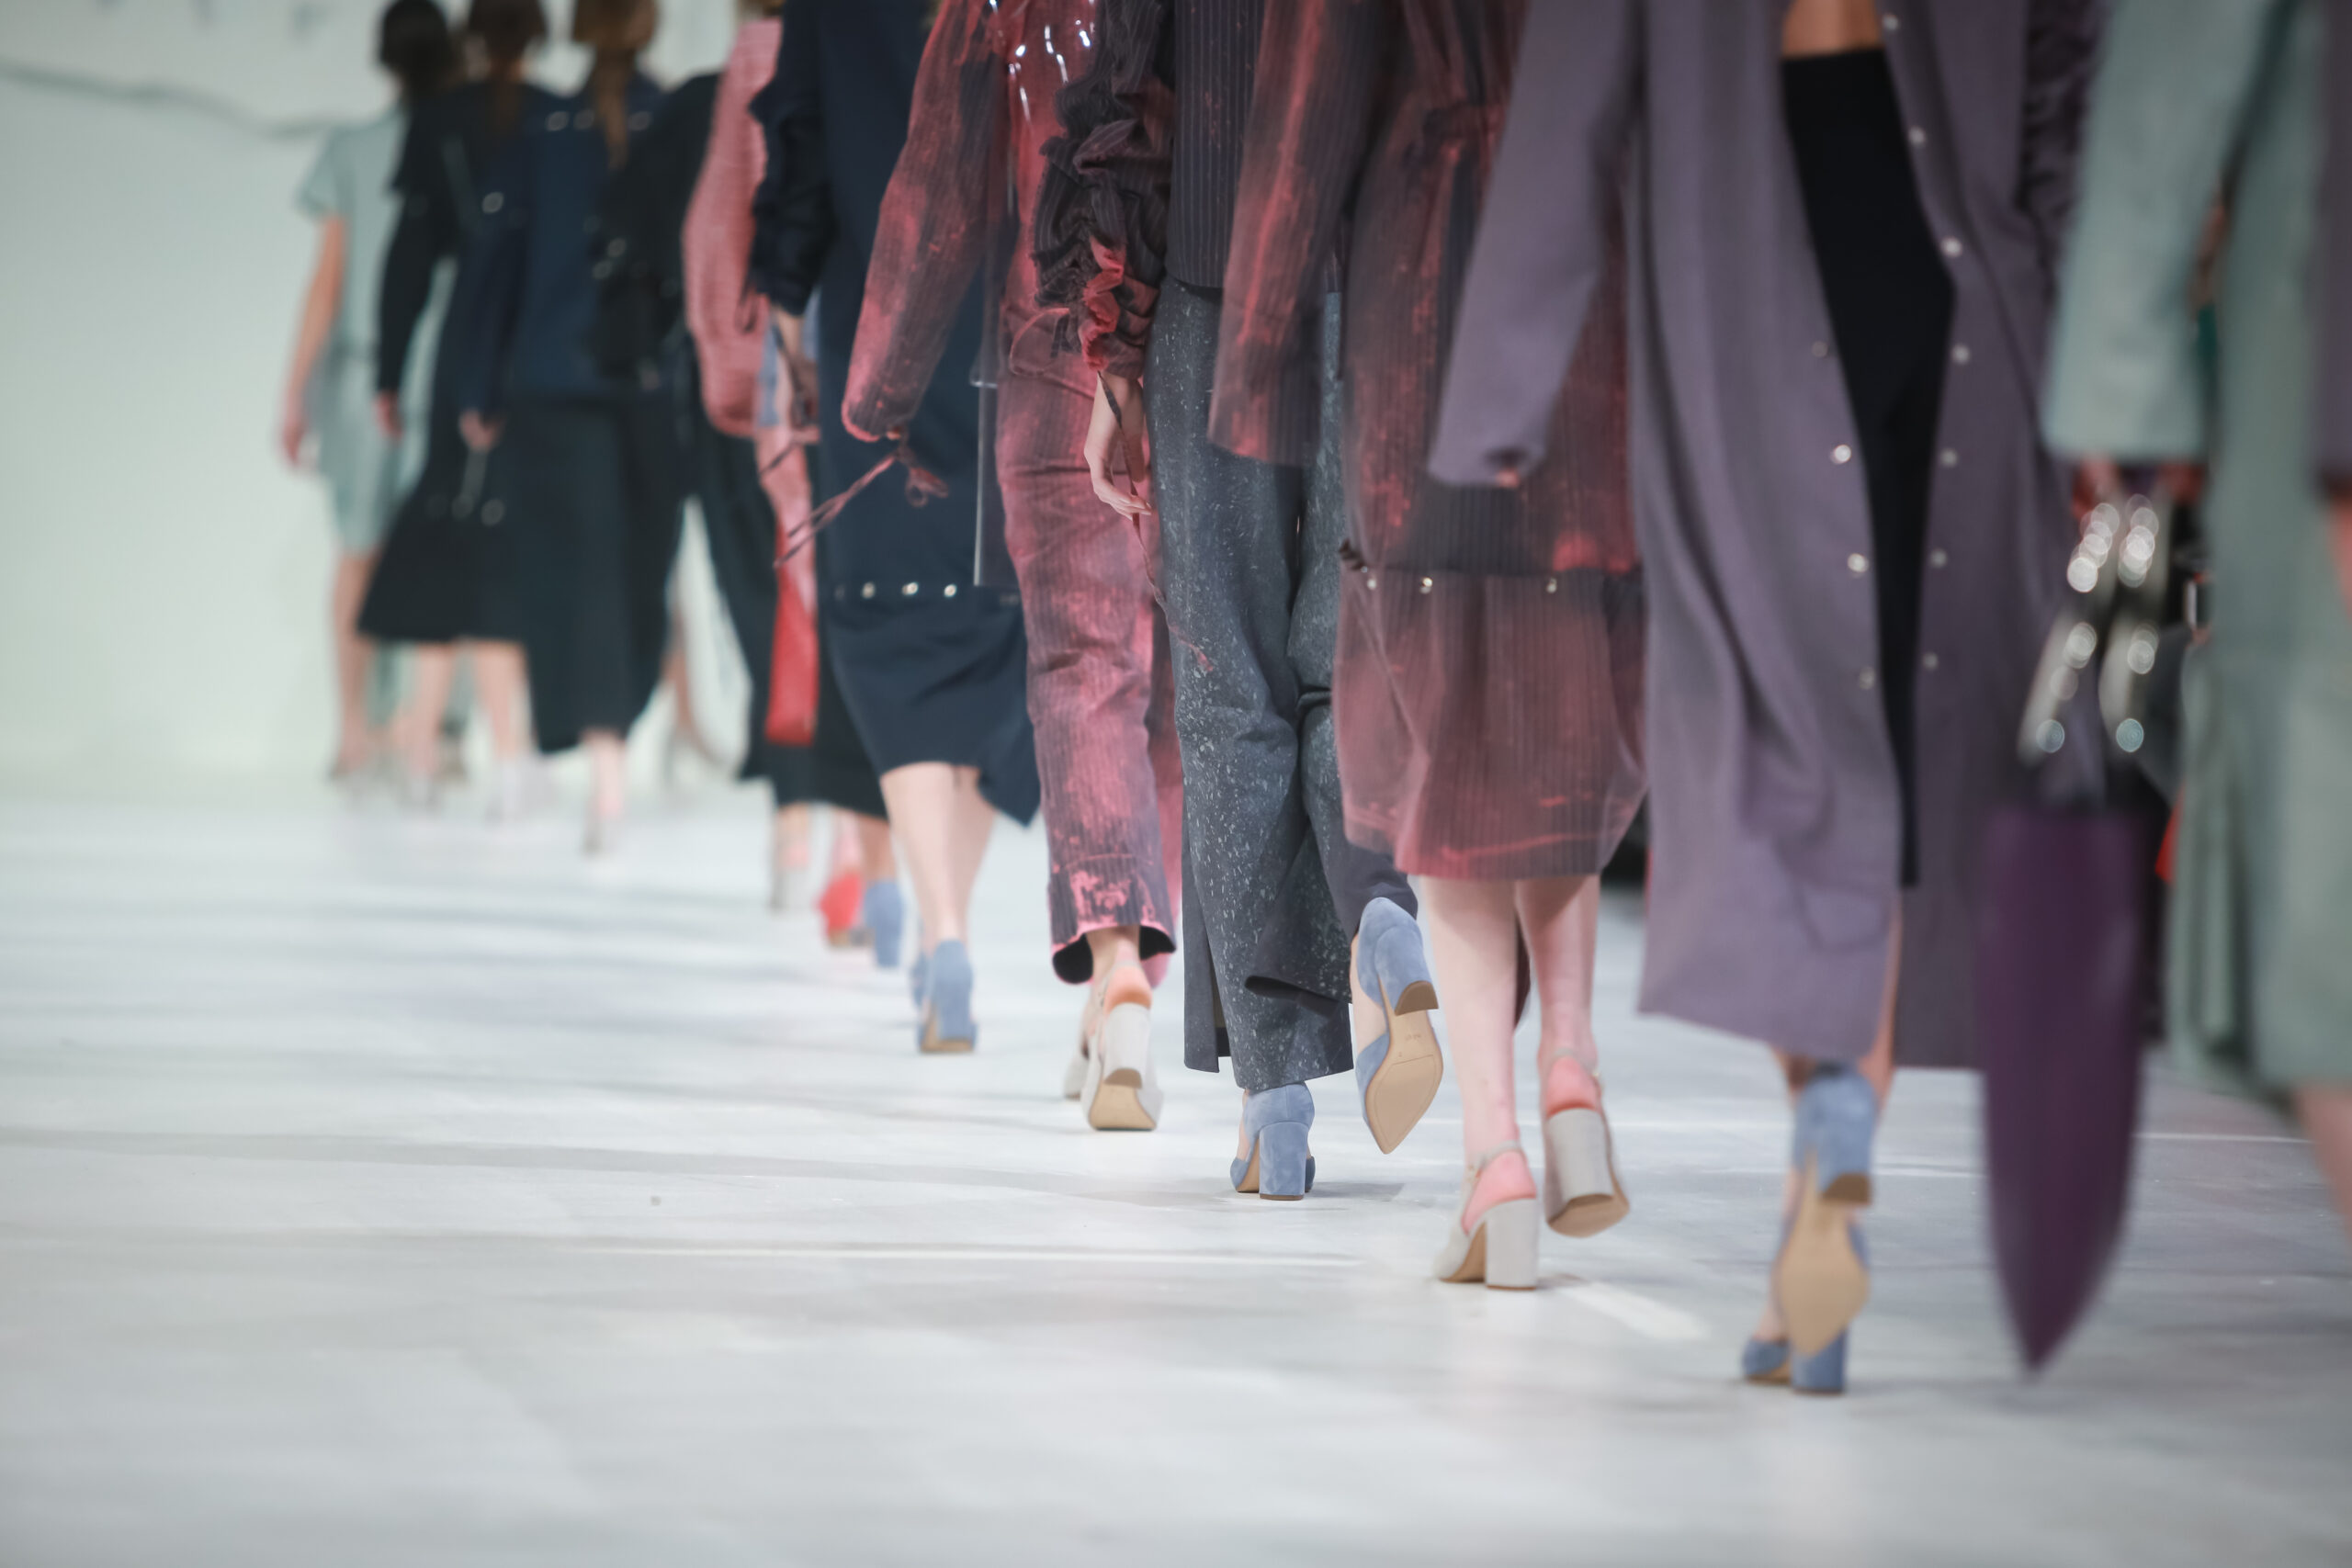 Catwalk worthy: Trying to improve the fashion life cycle